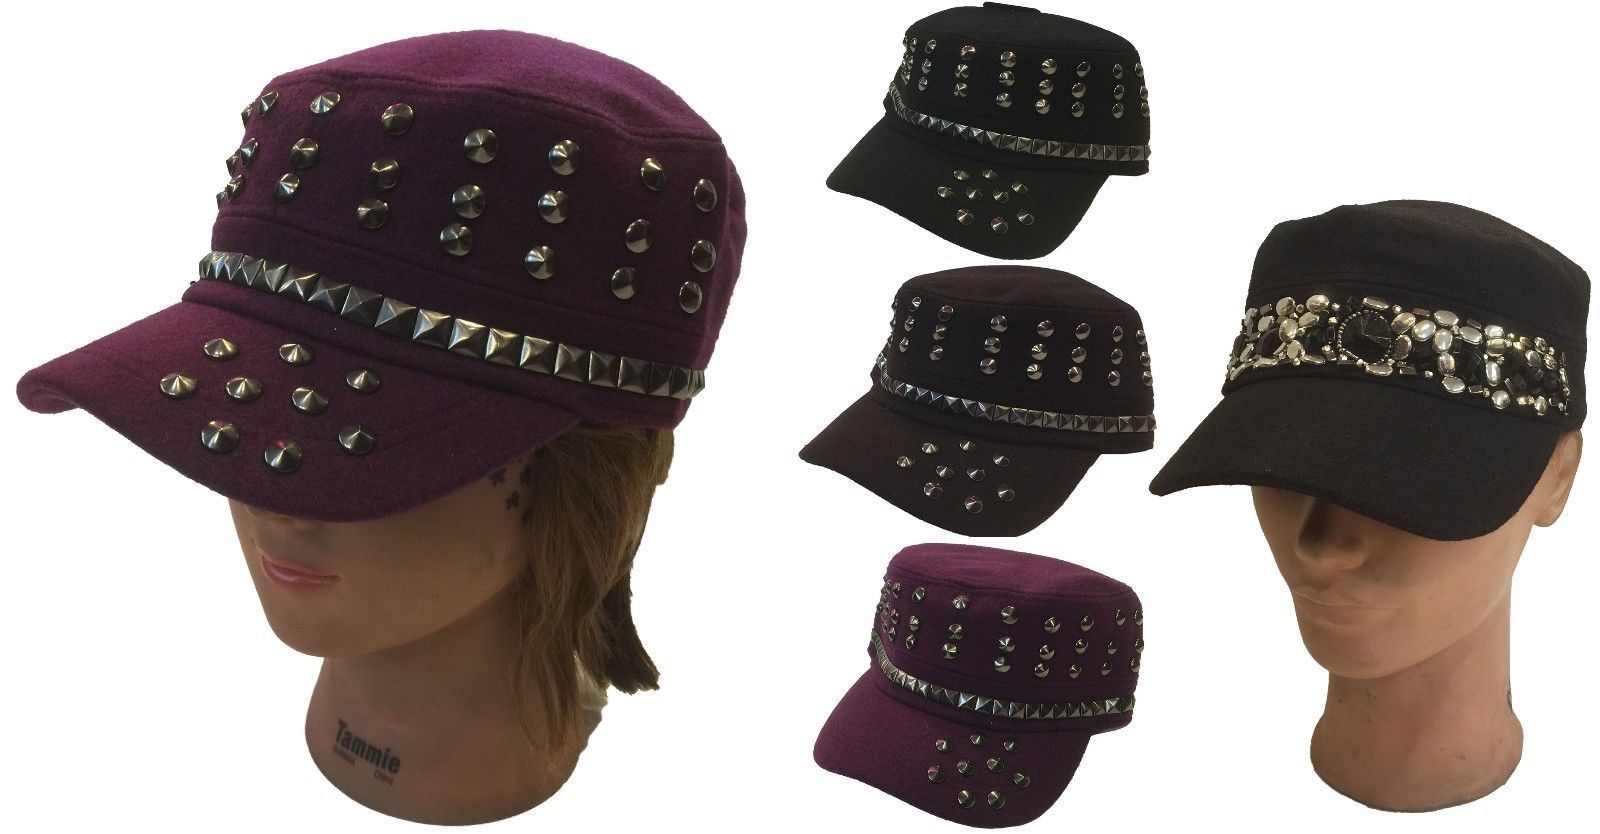 Lady Women Cadet Box Cap Army Military Fashion Castro Metal Rivet Wool Hat  Cap 81890f610d